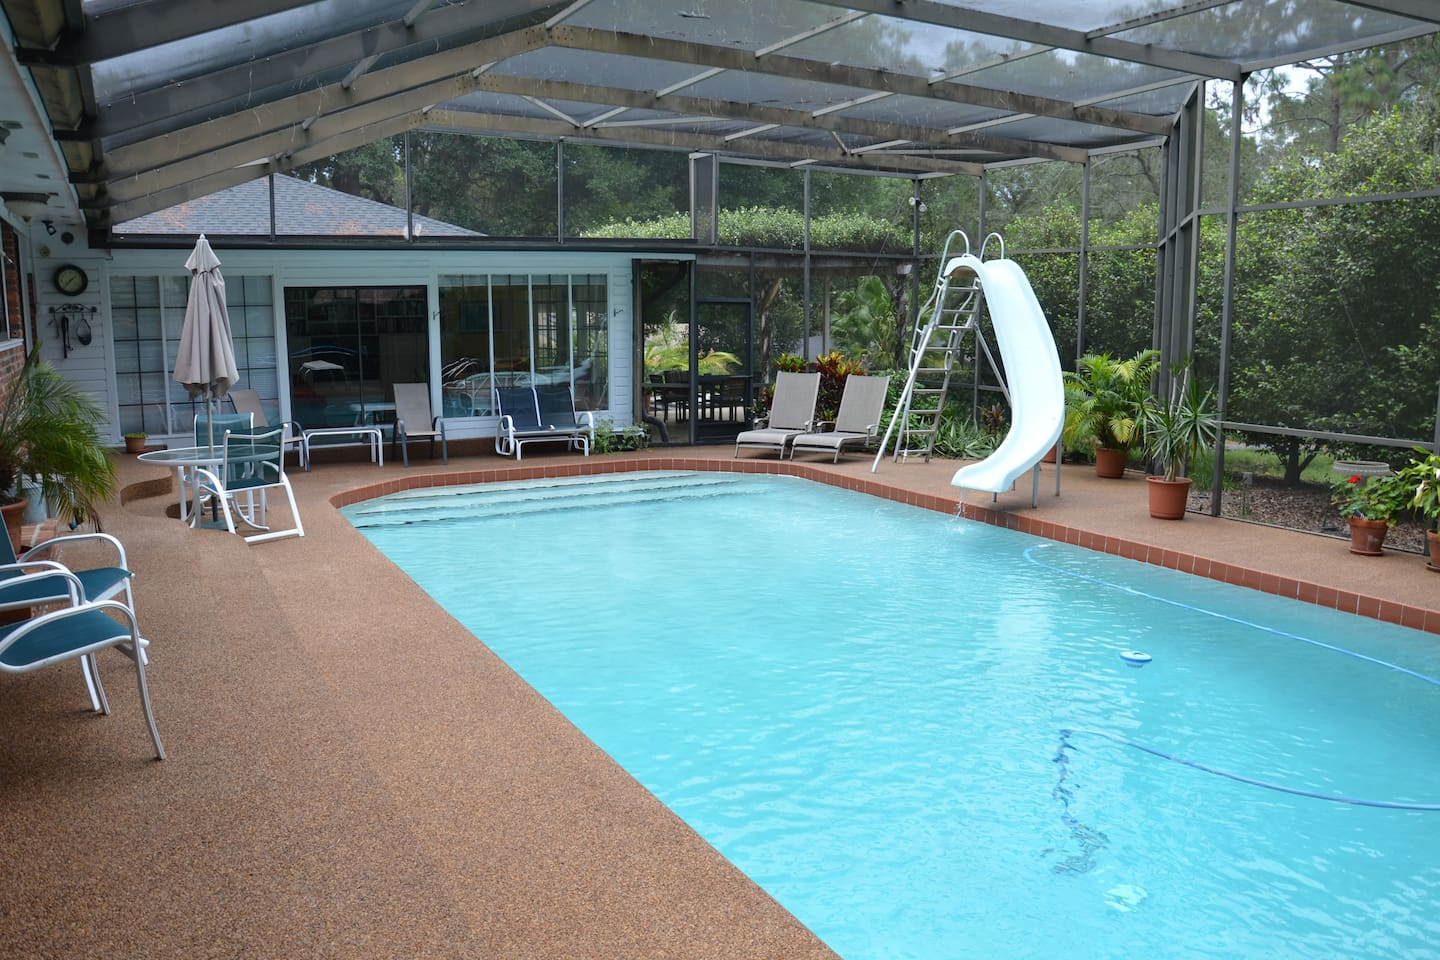 LARGE pool with slide and diving board. Plenty of room to lounge!